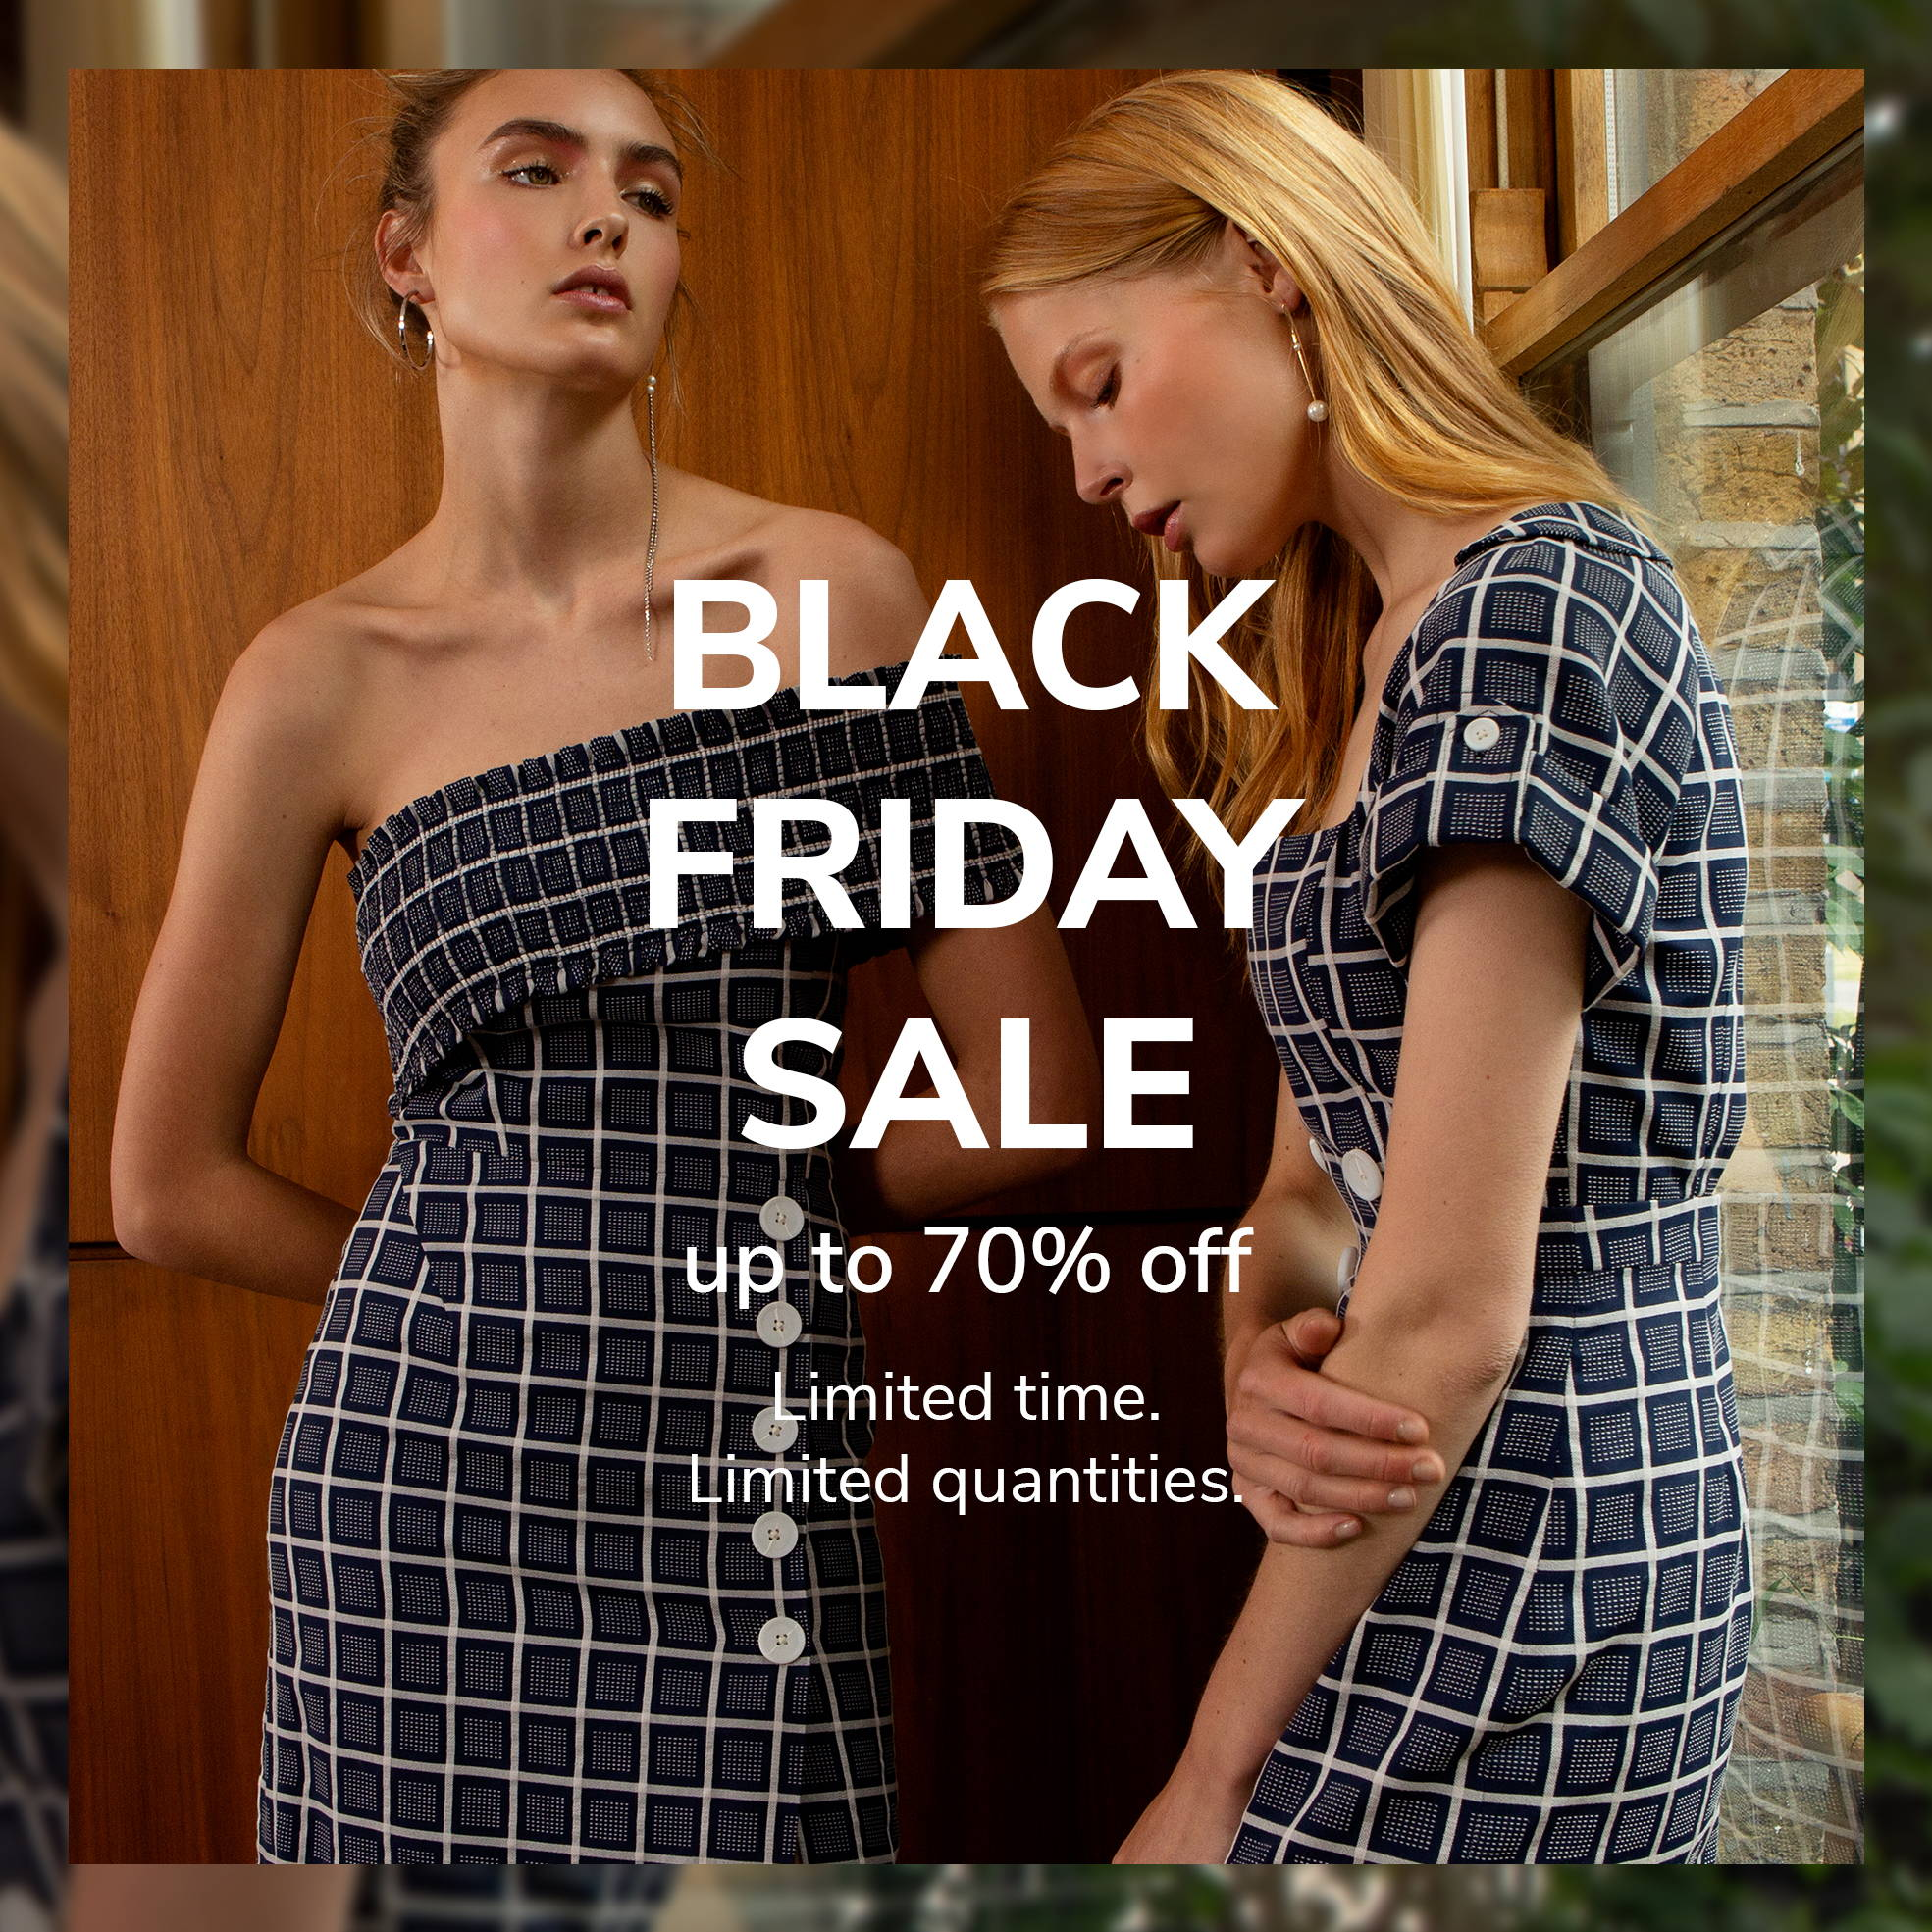 Black Friday Sale - Up to 70% off